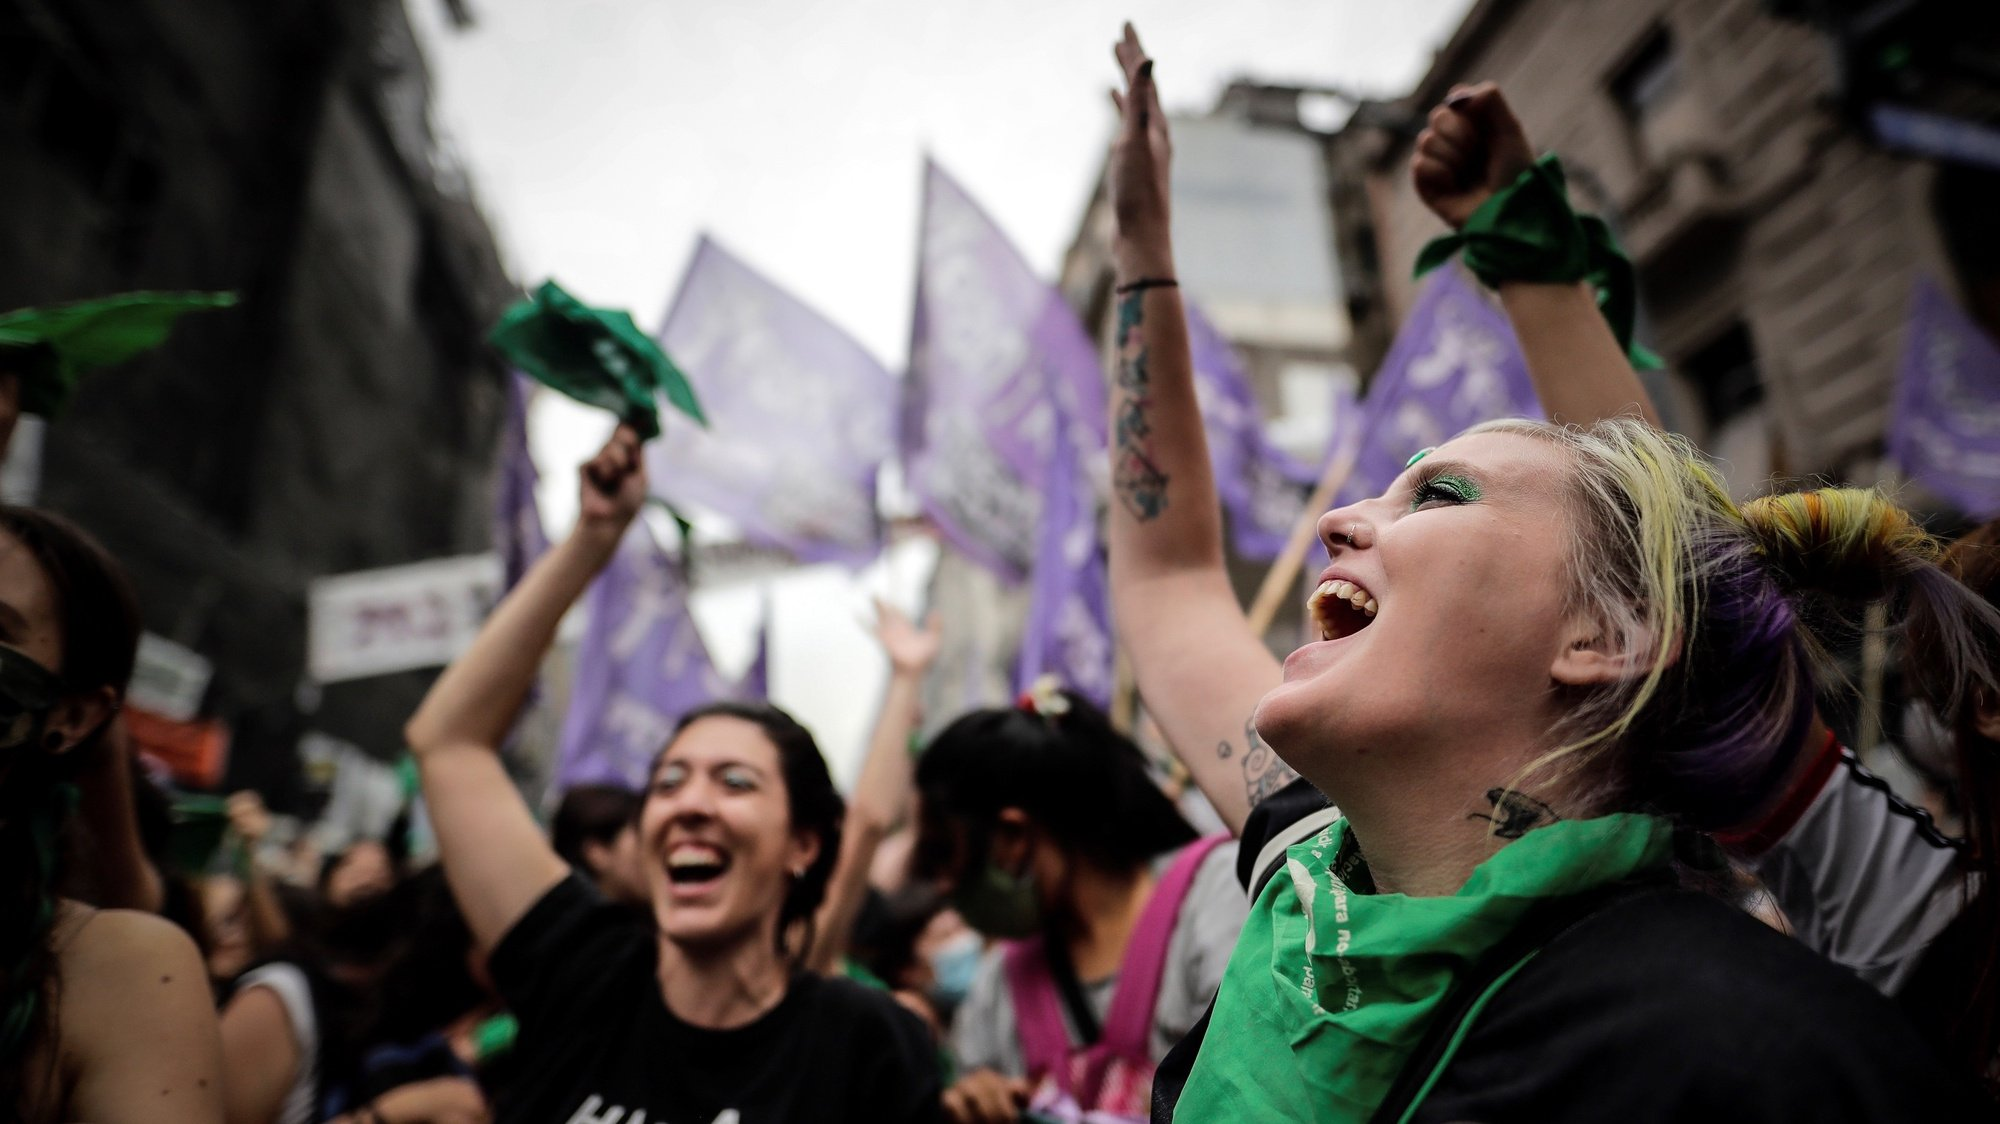 epa08876882 Women celebrate the approval of the new abortion law in front of the Congress, in Buenos Aires, Argentina, 11 December 2020. The new abortion bill would allow to get an abortion until the 14th week of pregnancy.  EPA/Juan Ignacio Roncoroni